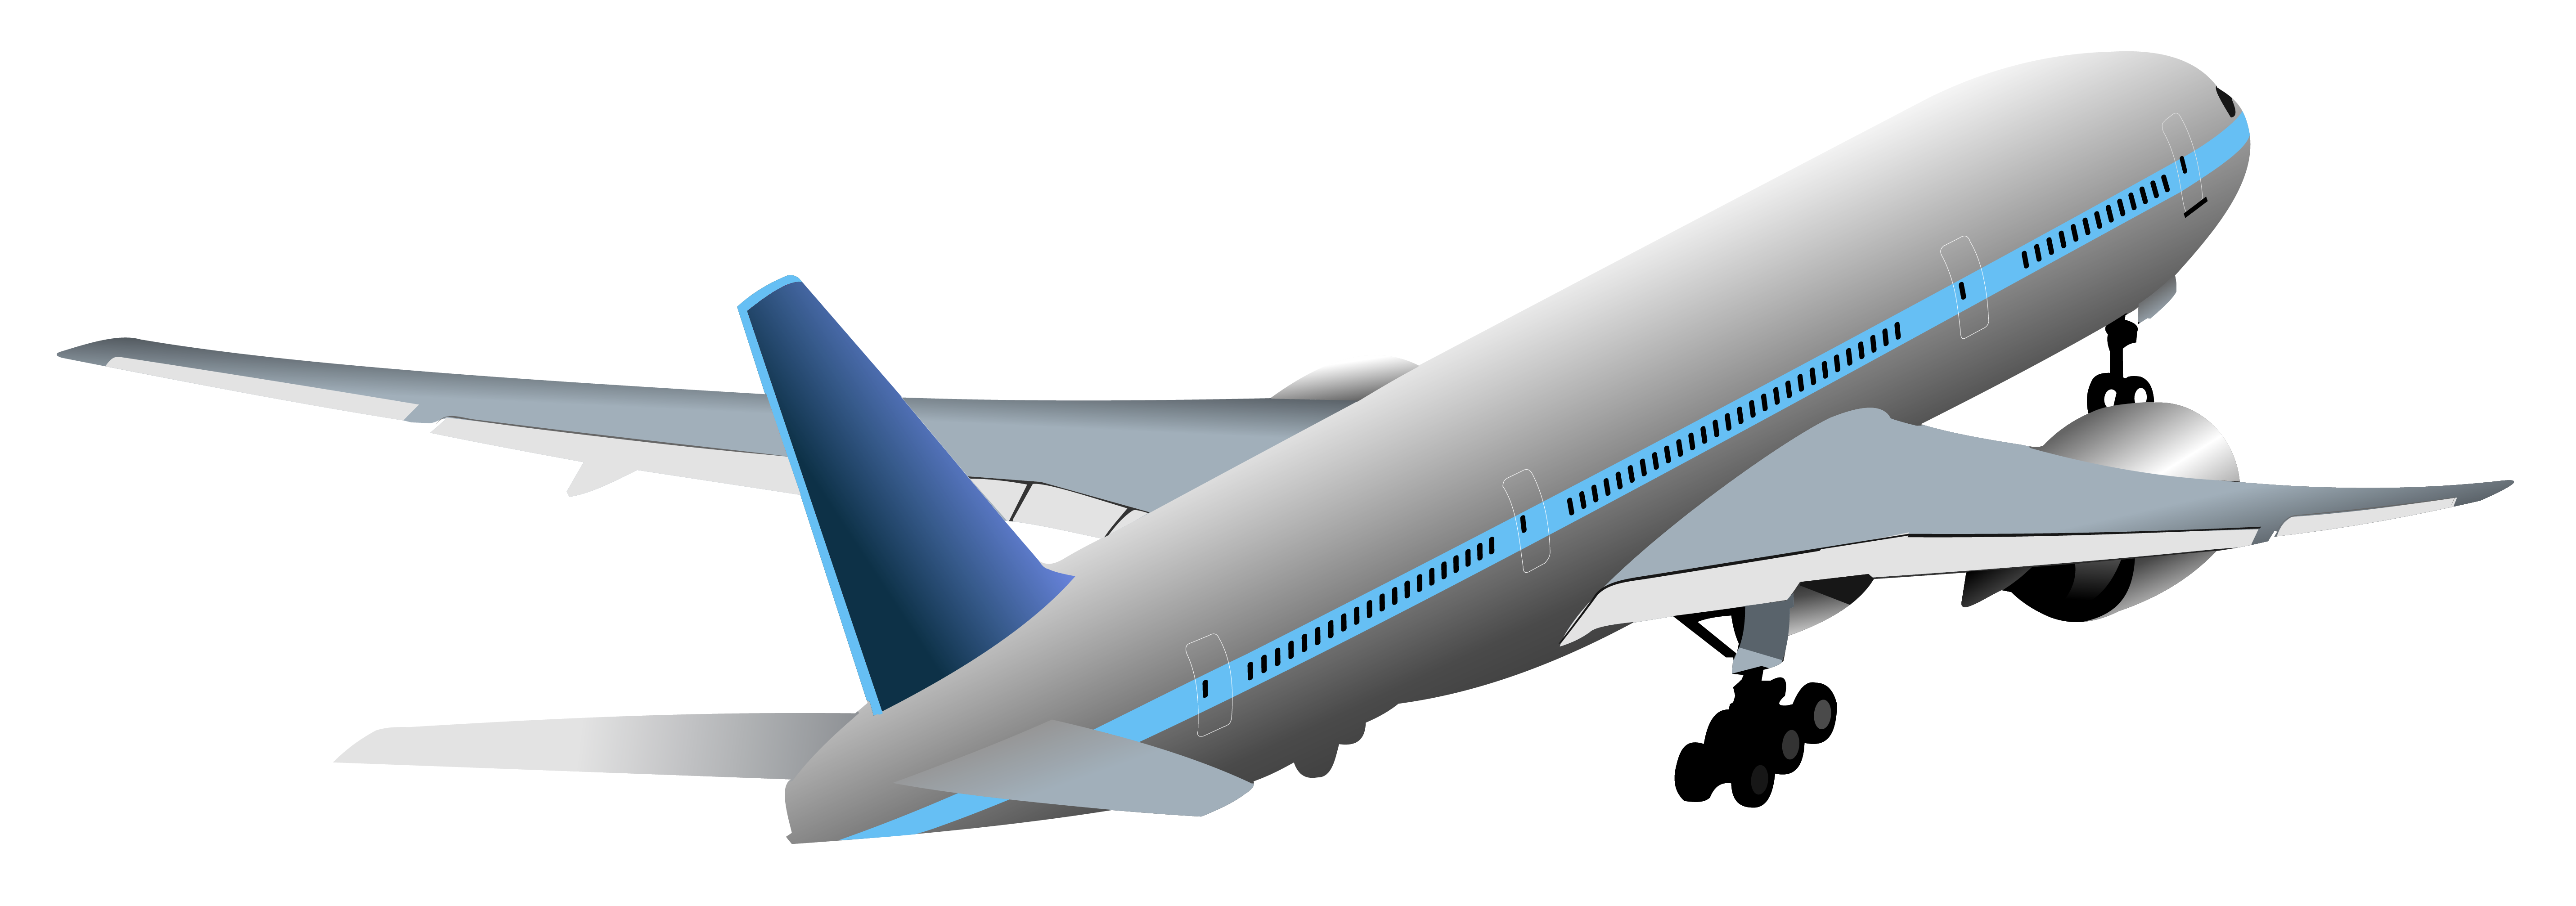 Jet clipart aviation.  collection of airplane